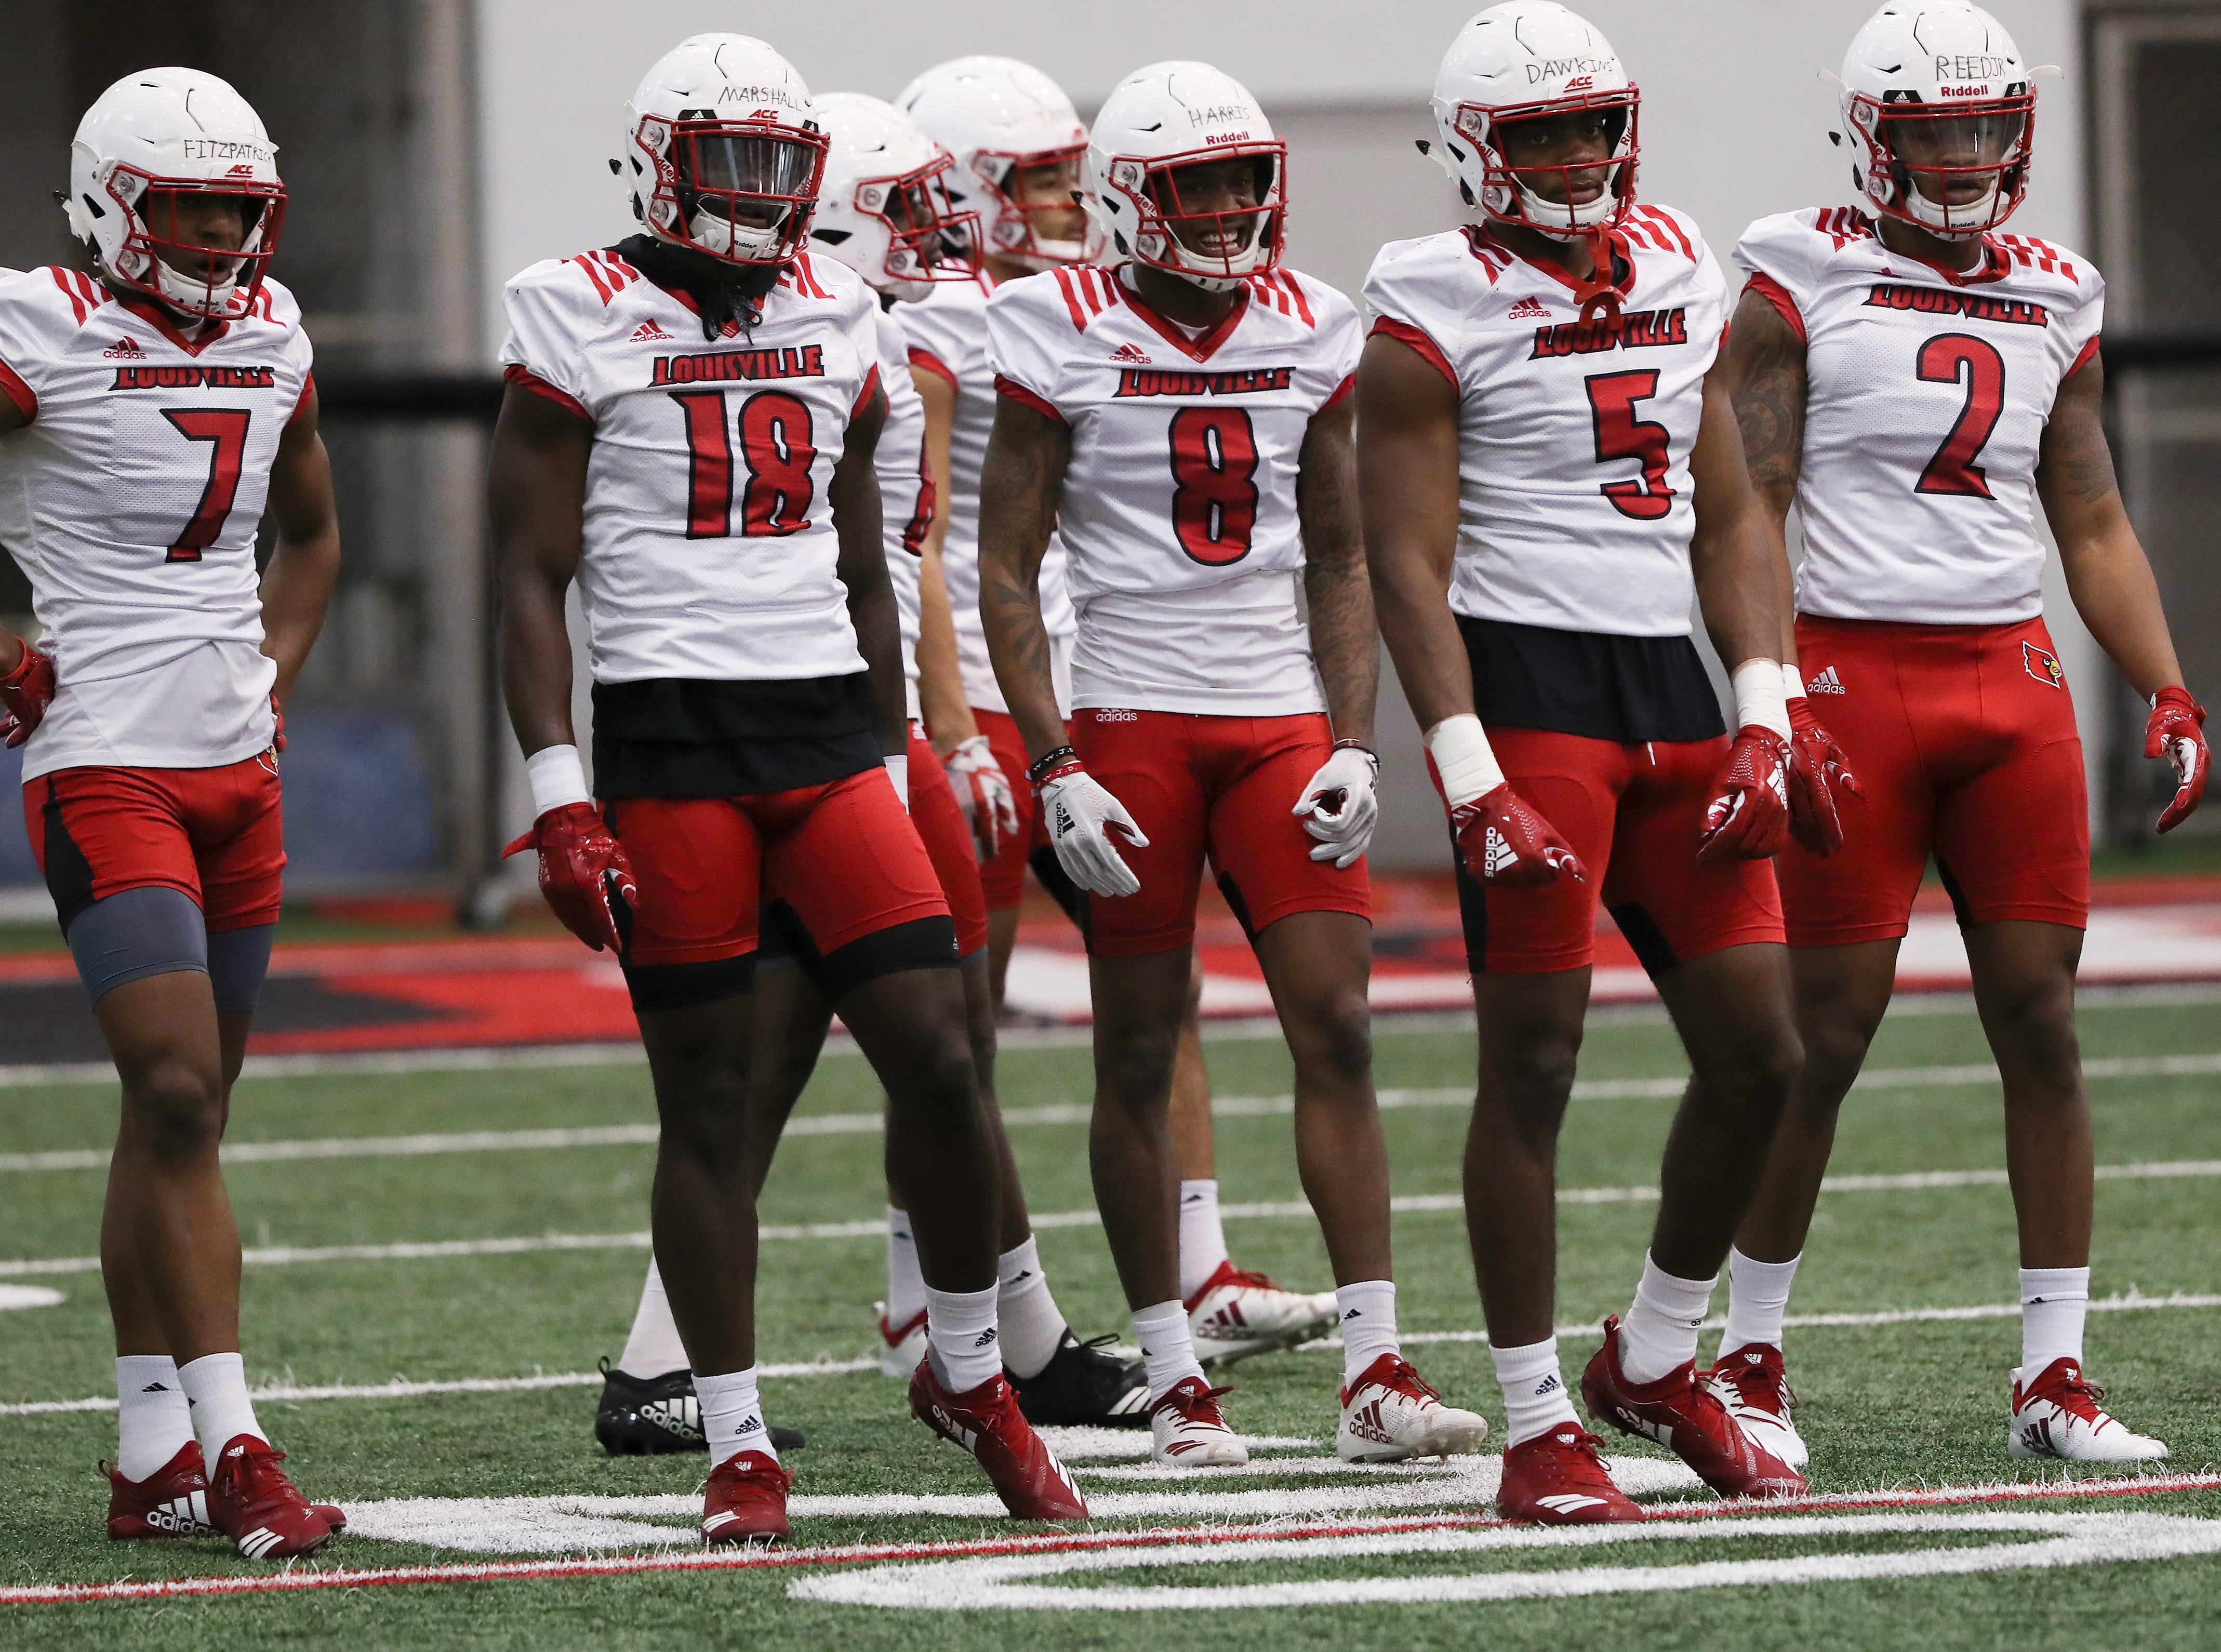 U of L receivers during practice at the Trager Center.